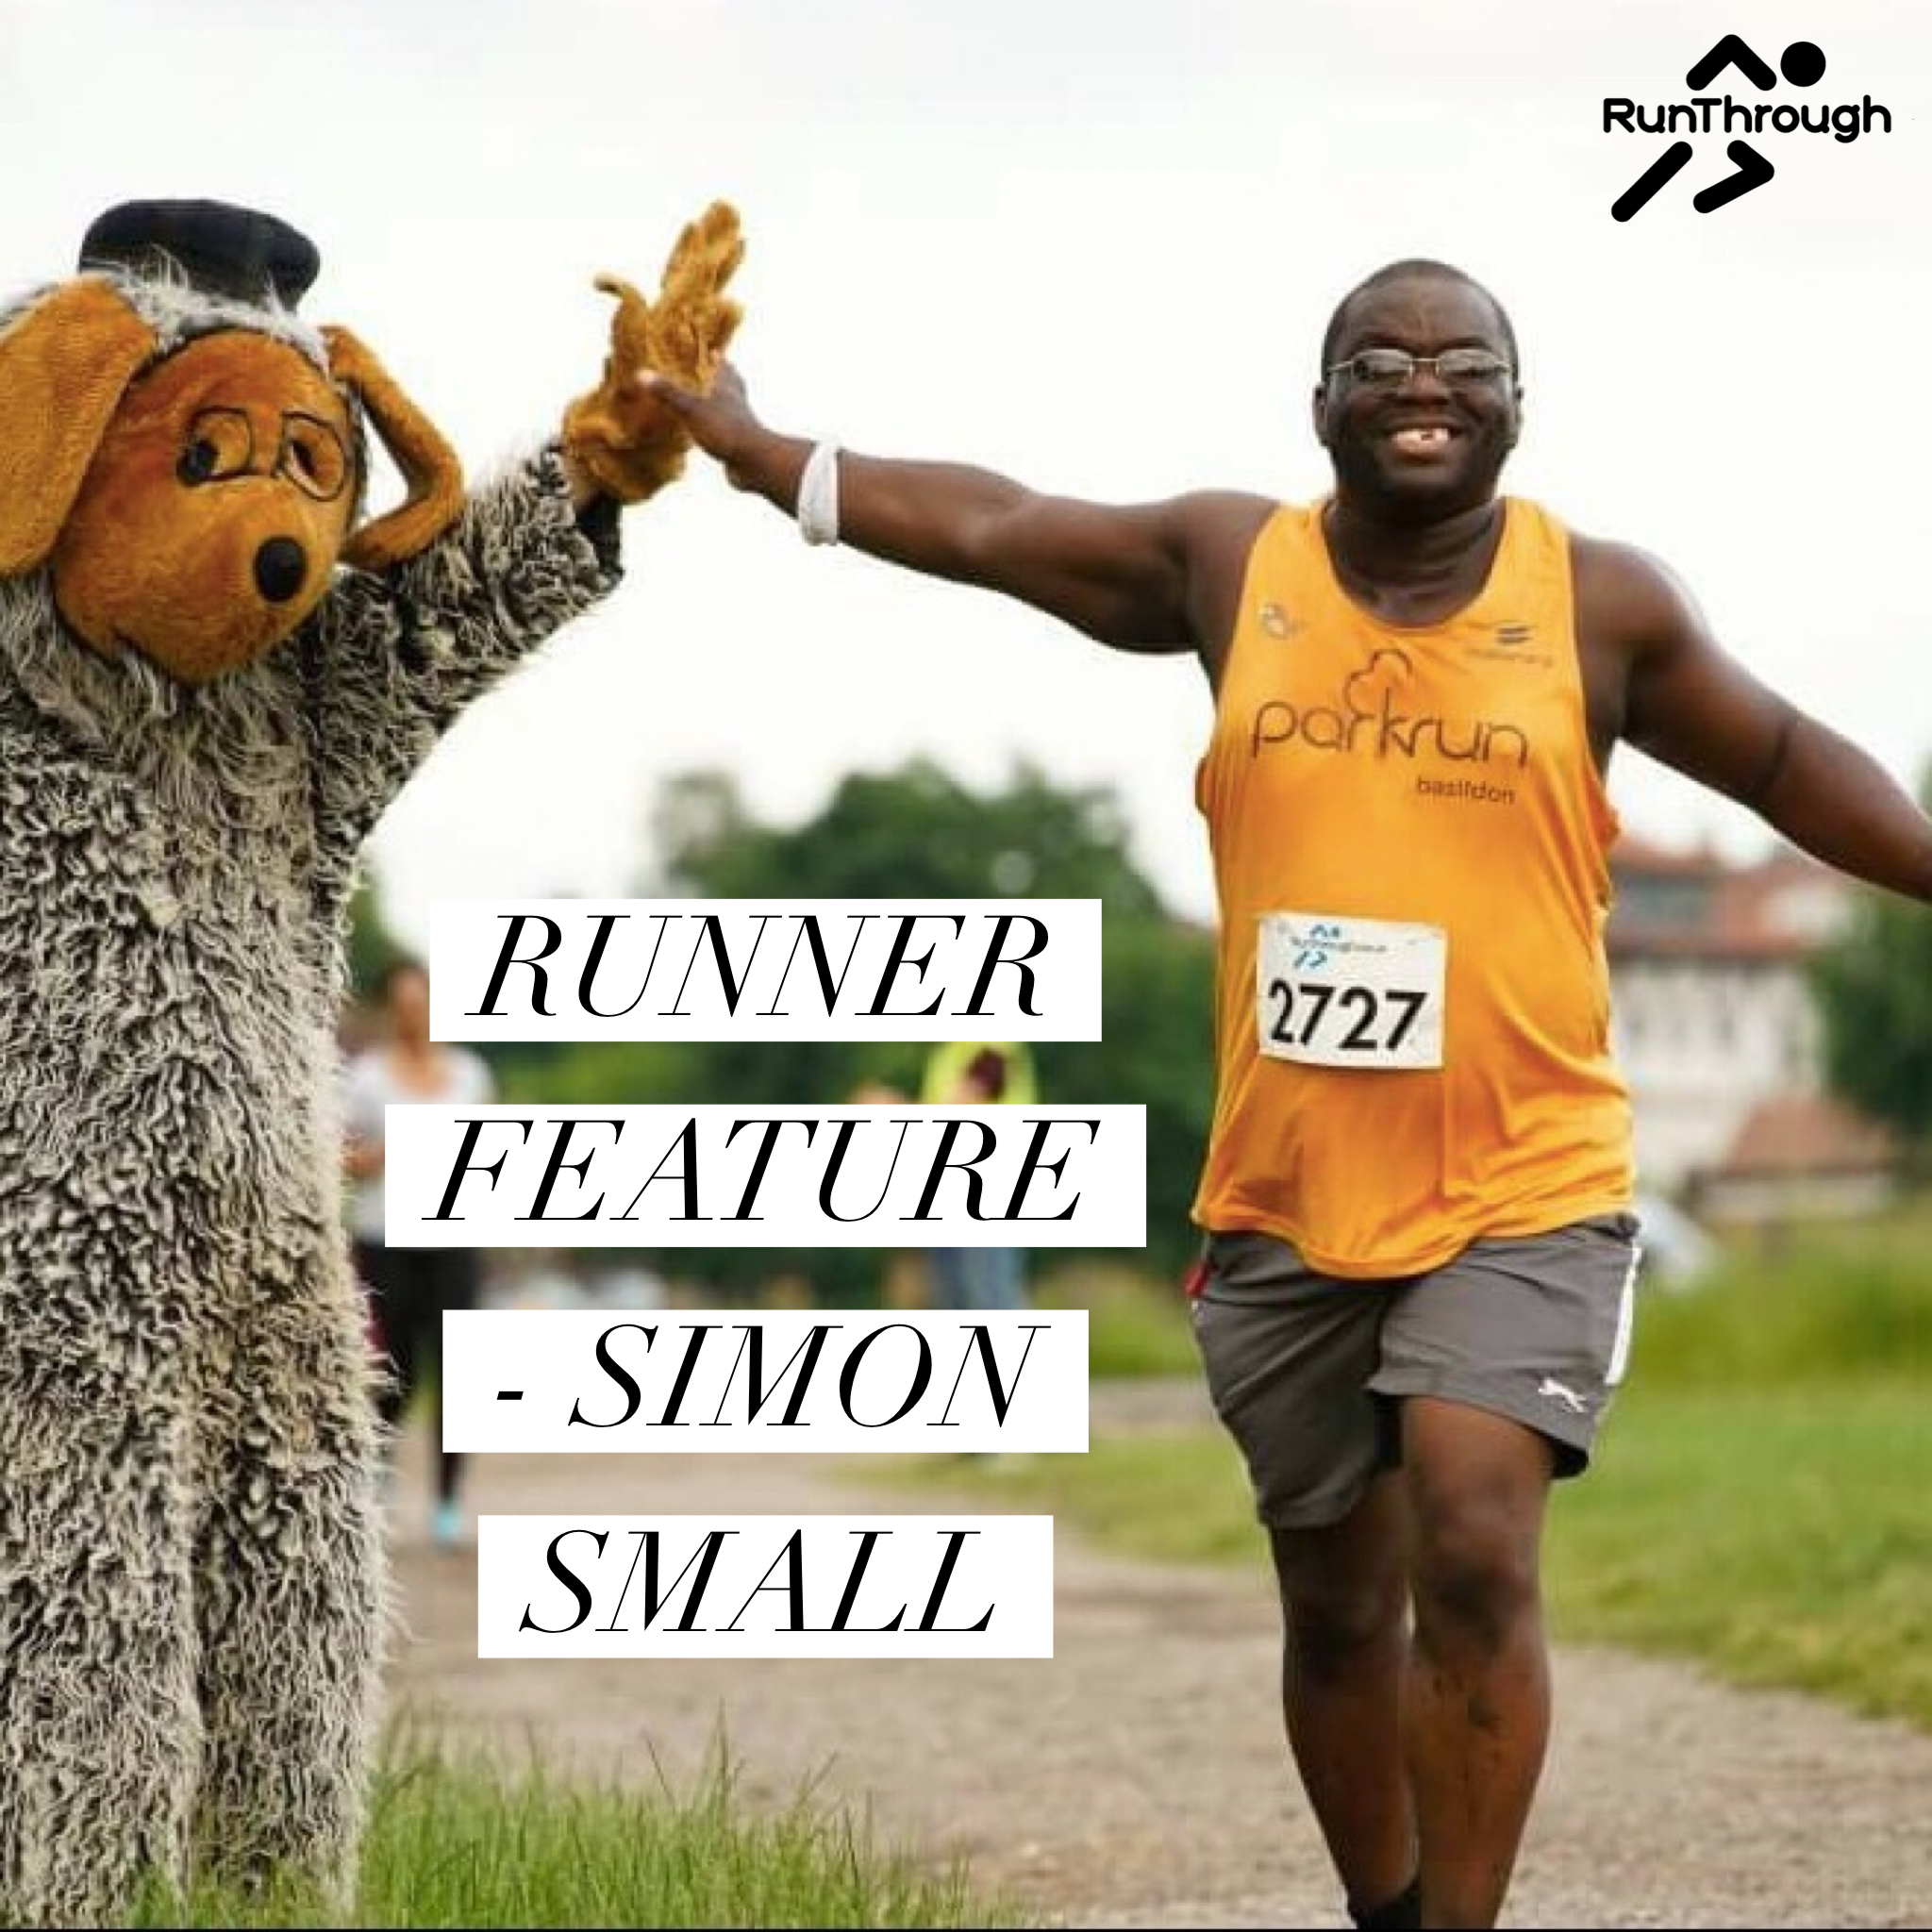 Runner Feature – Simon Small